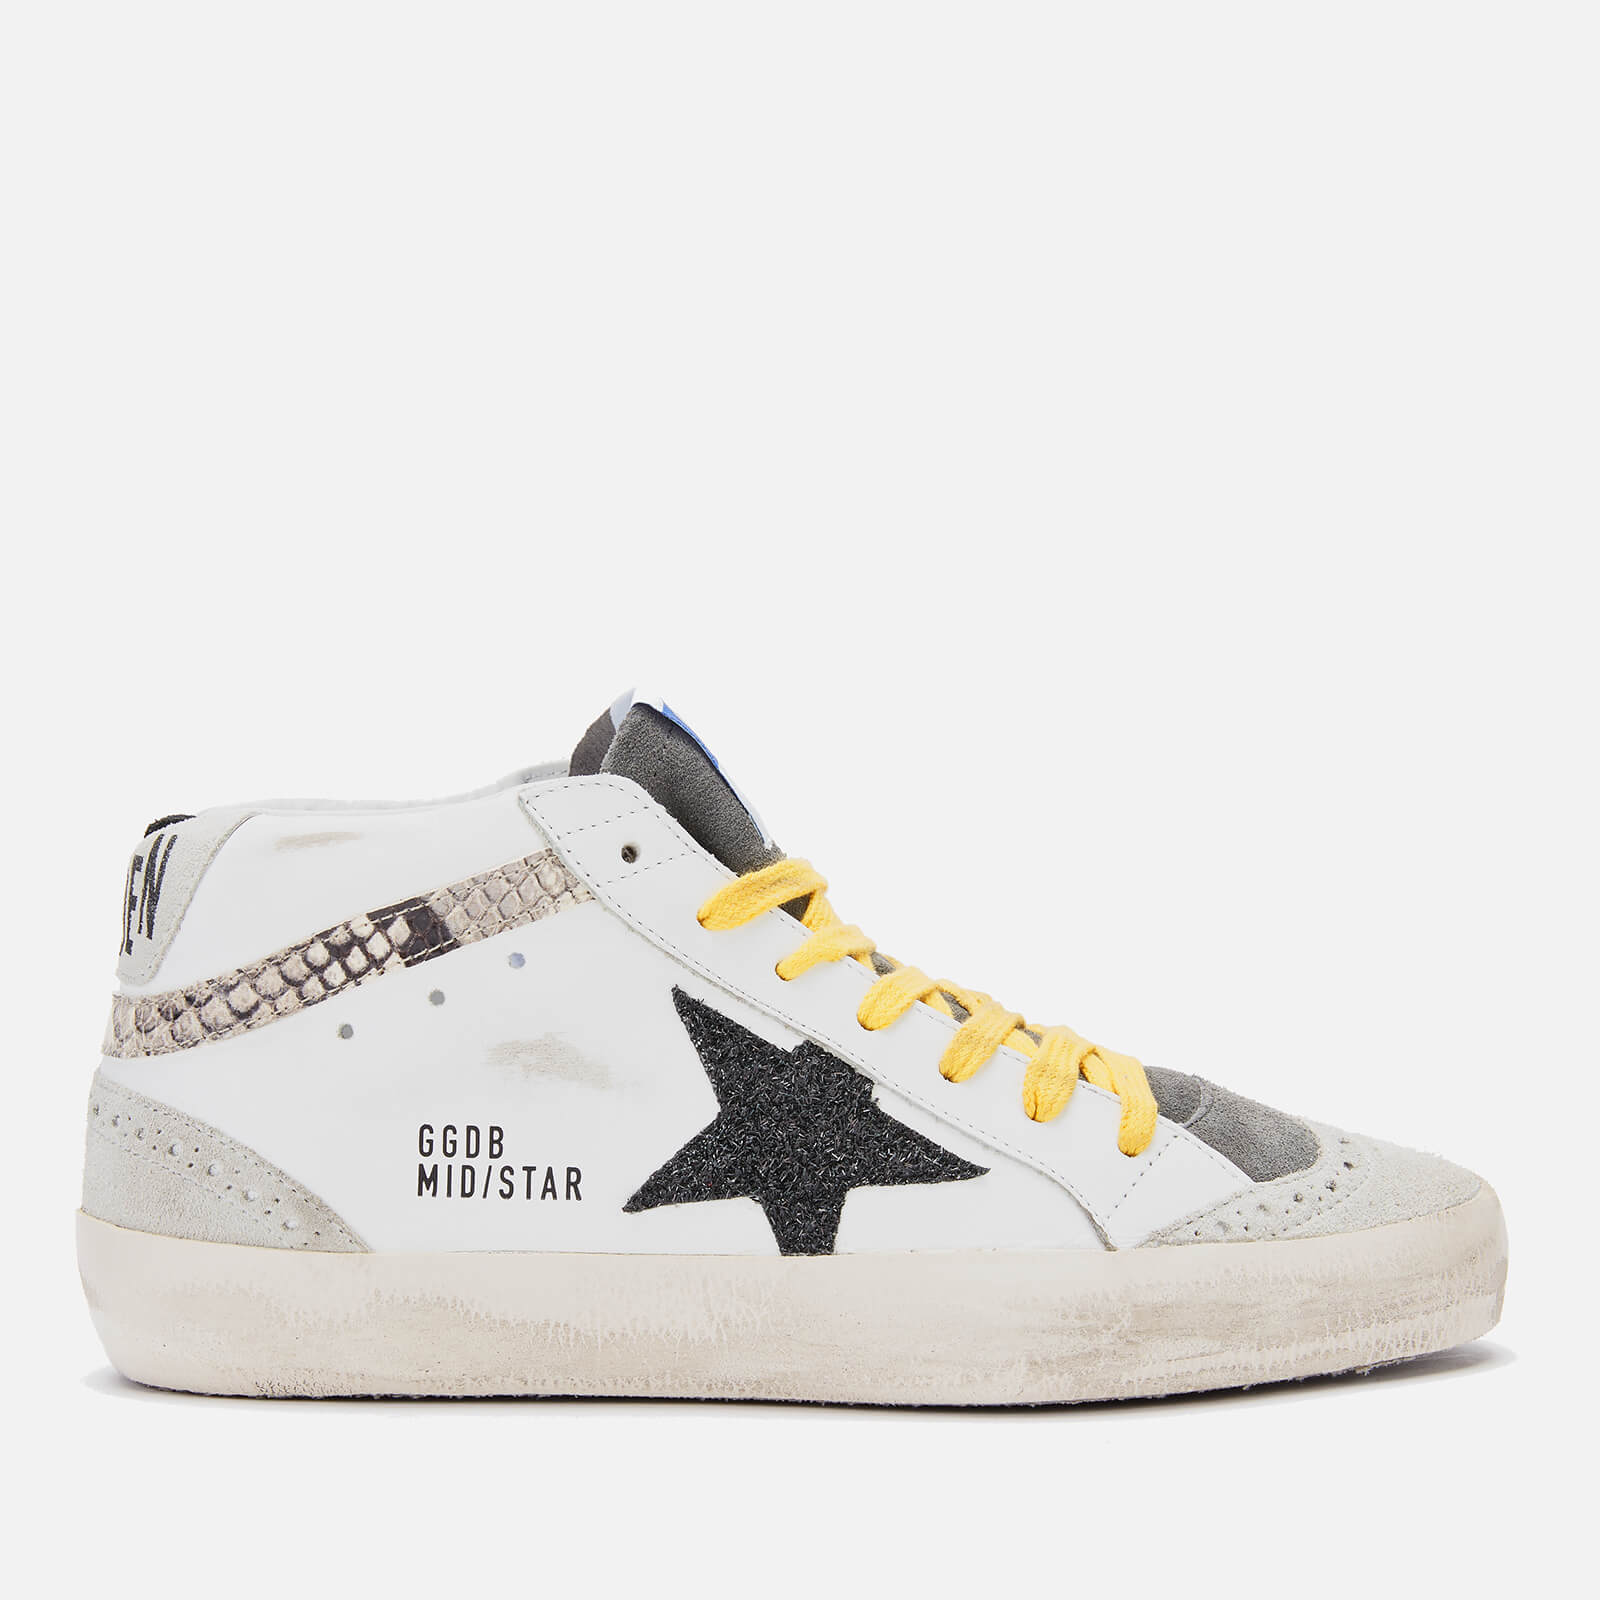 Golden Goose Deluxe Brand Women's Mid Star Leather Trainers - White/Snake Print/Black Glitter Star - UK 4 - White